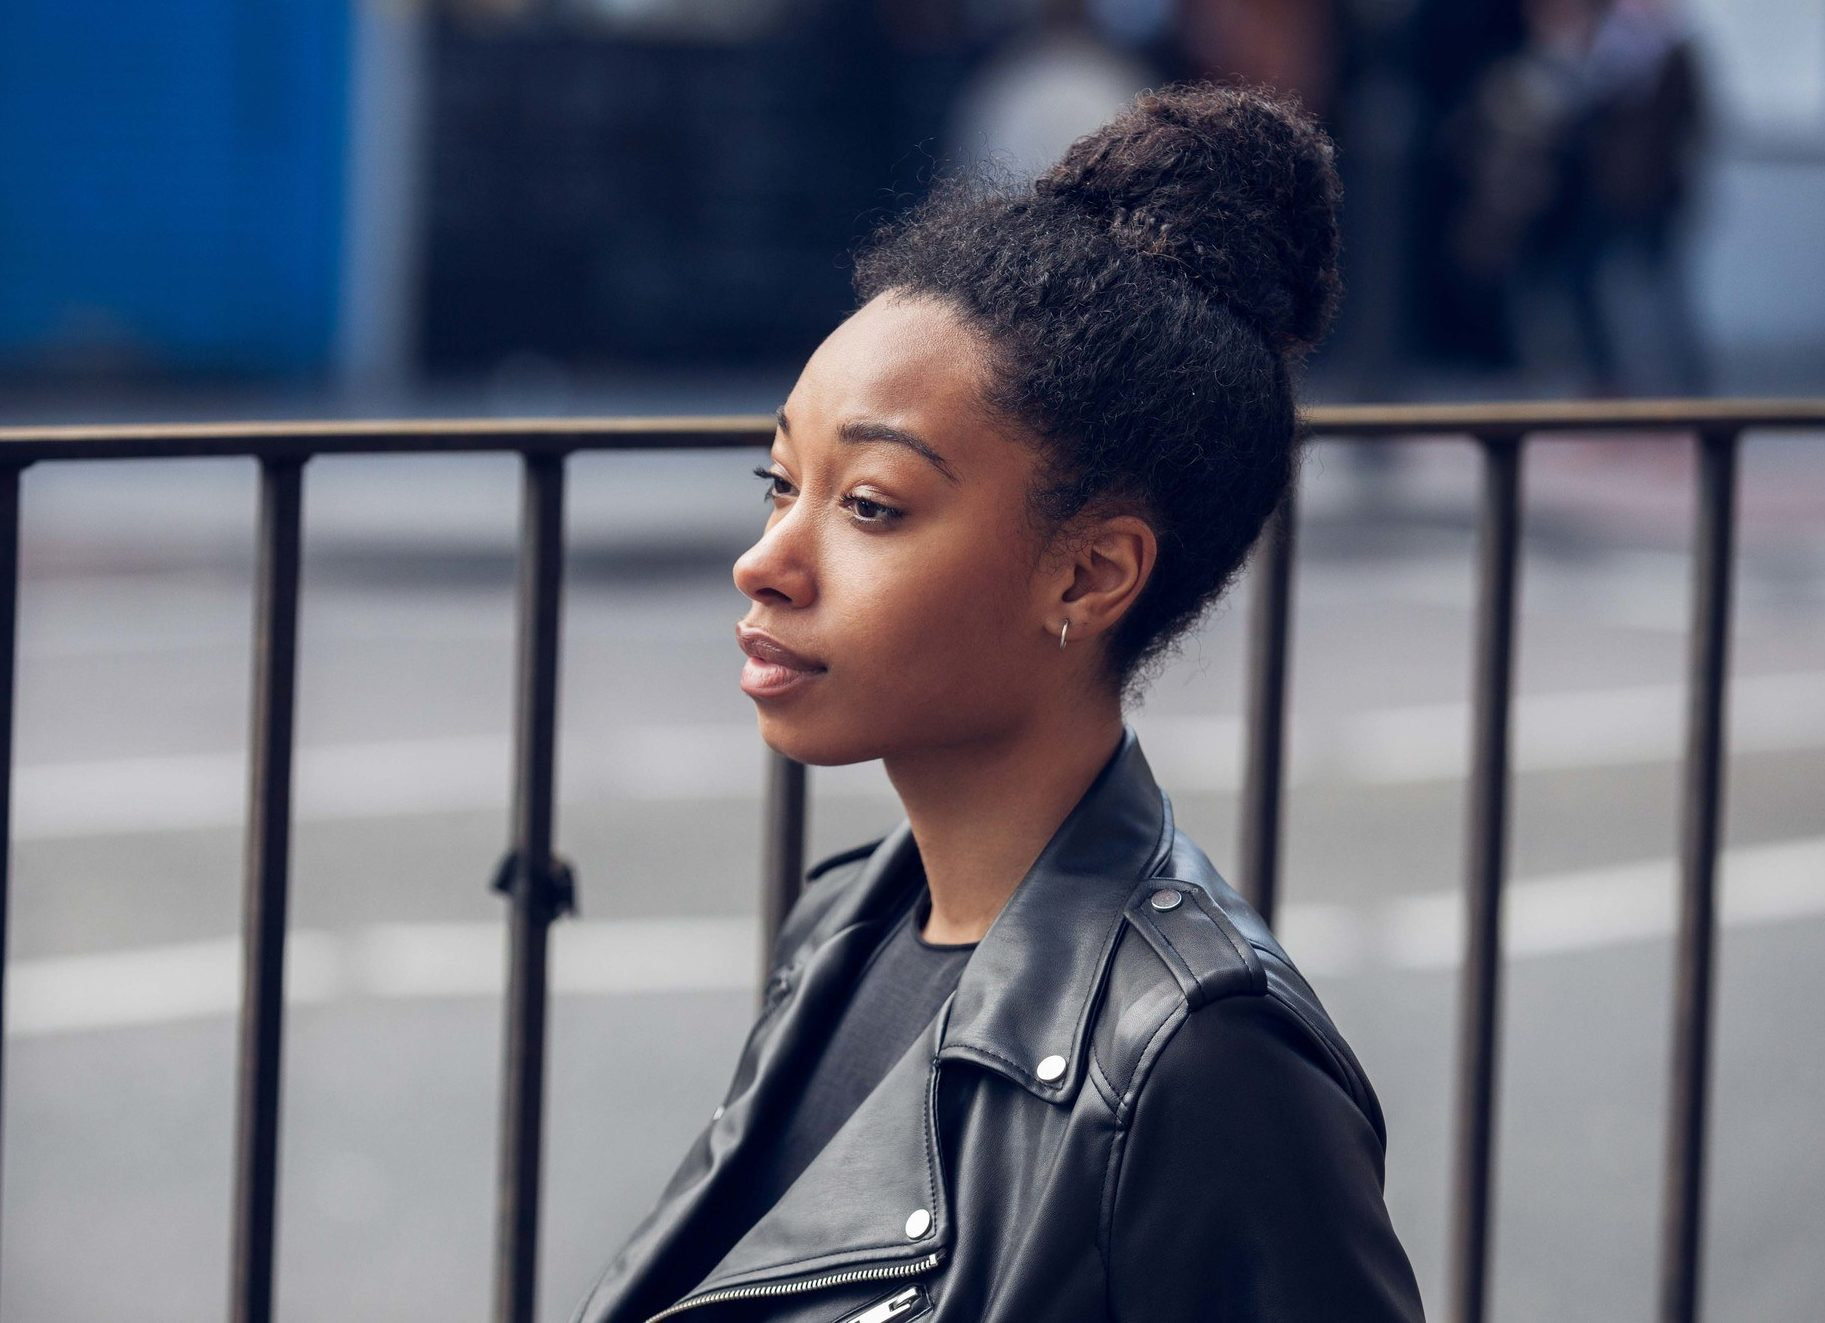 Curly hair hairstyles: Side profile of a black woman with natural hair styled in a high bun in street style picture wearing a black leather jacket.